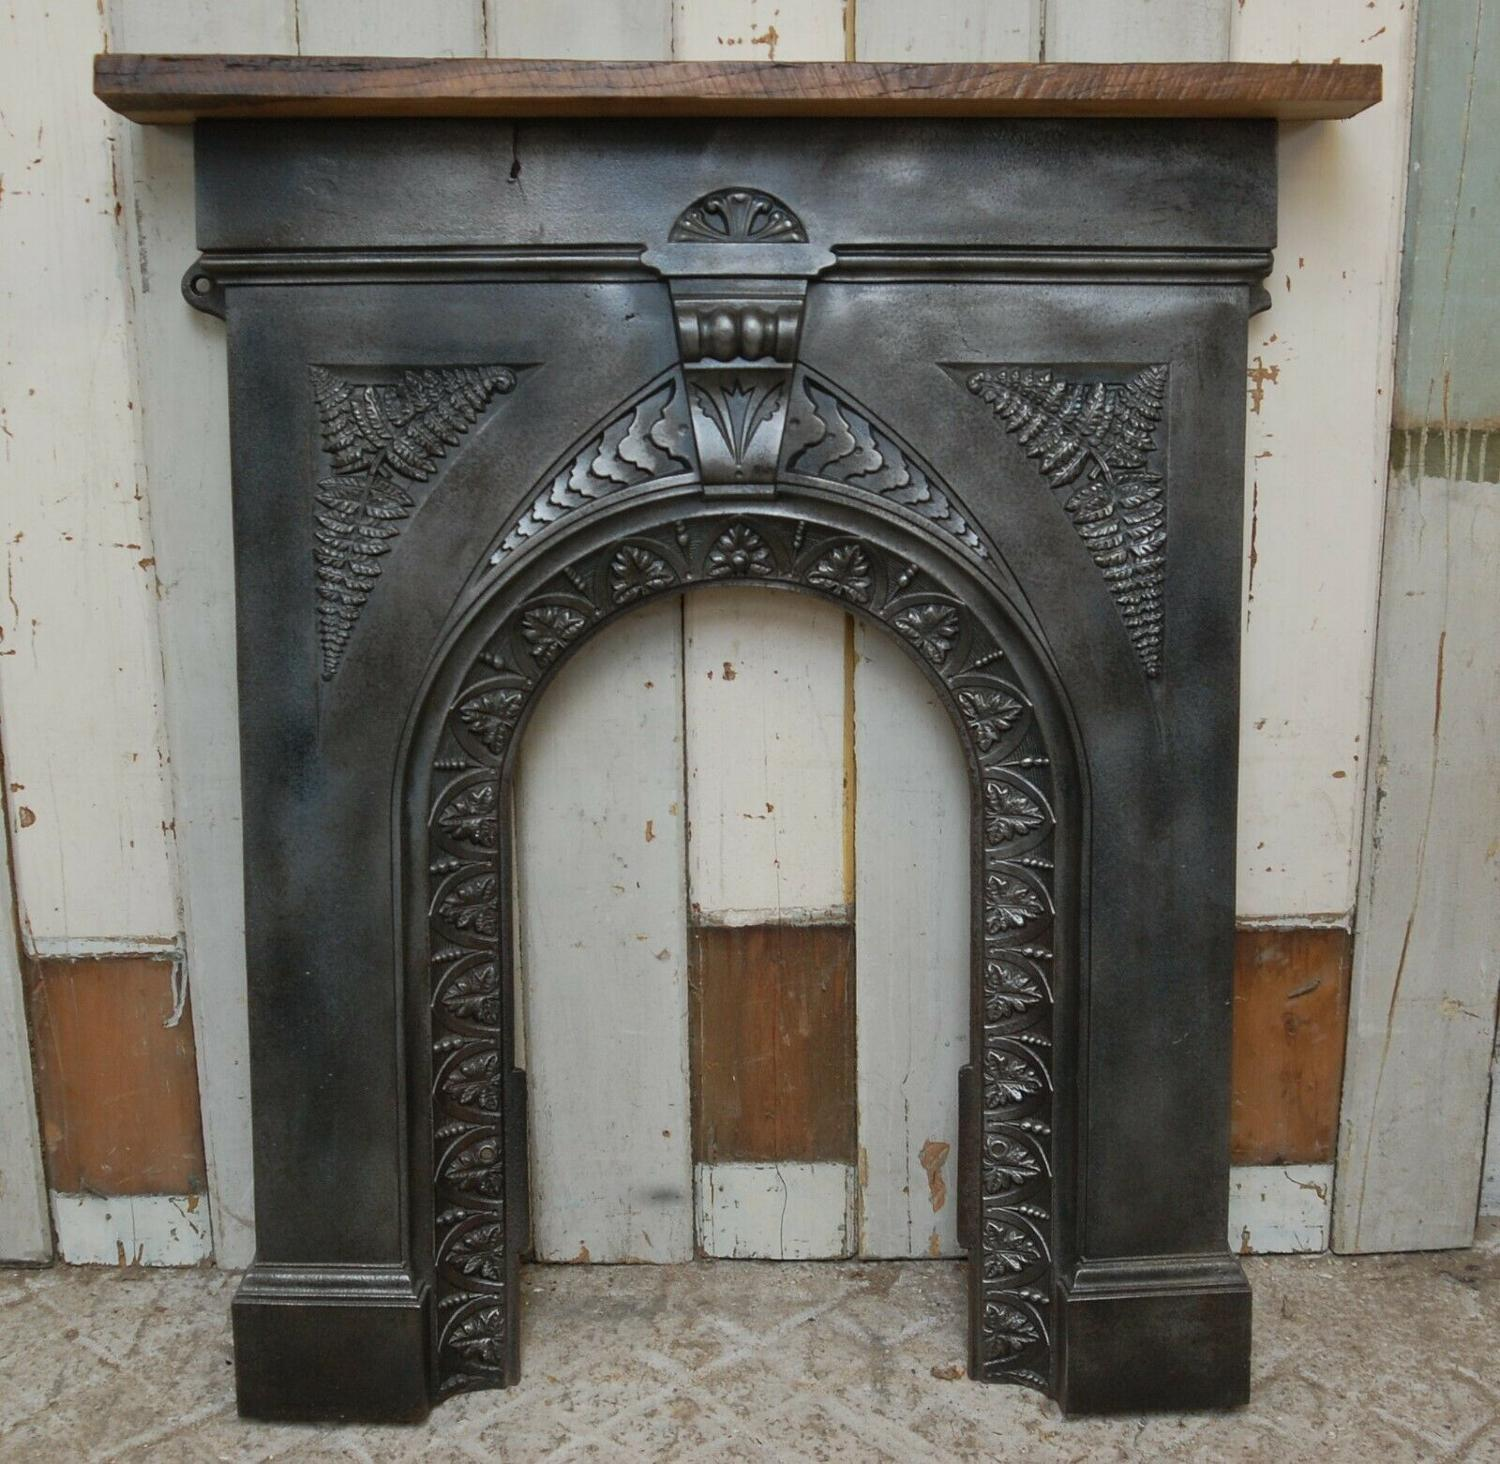 FS0076 DECORATIVE VICTORIAN CAST IRON FIRE SURROUND WITH OAK MANTEL